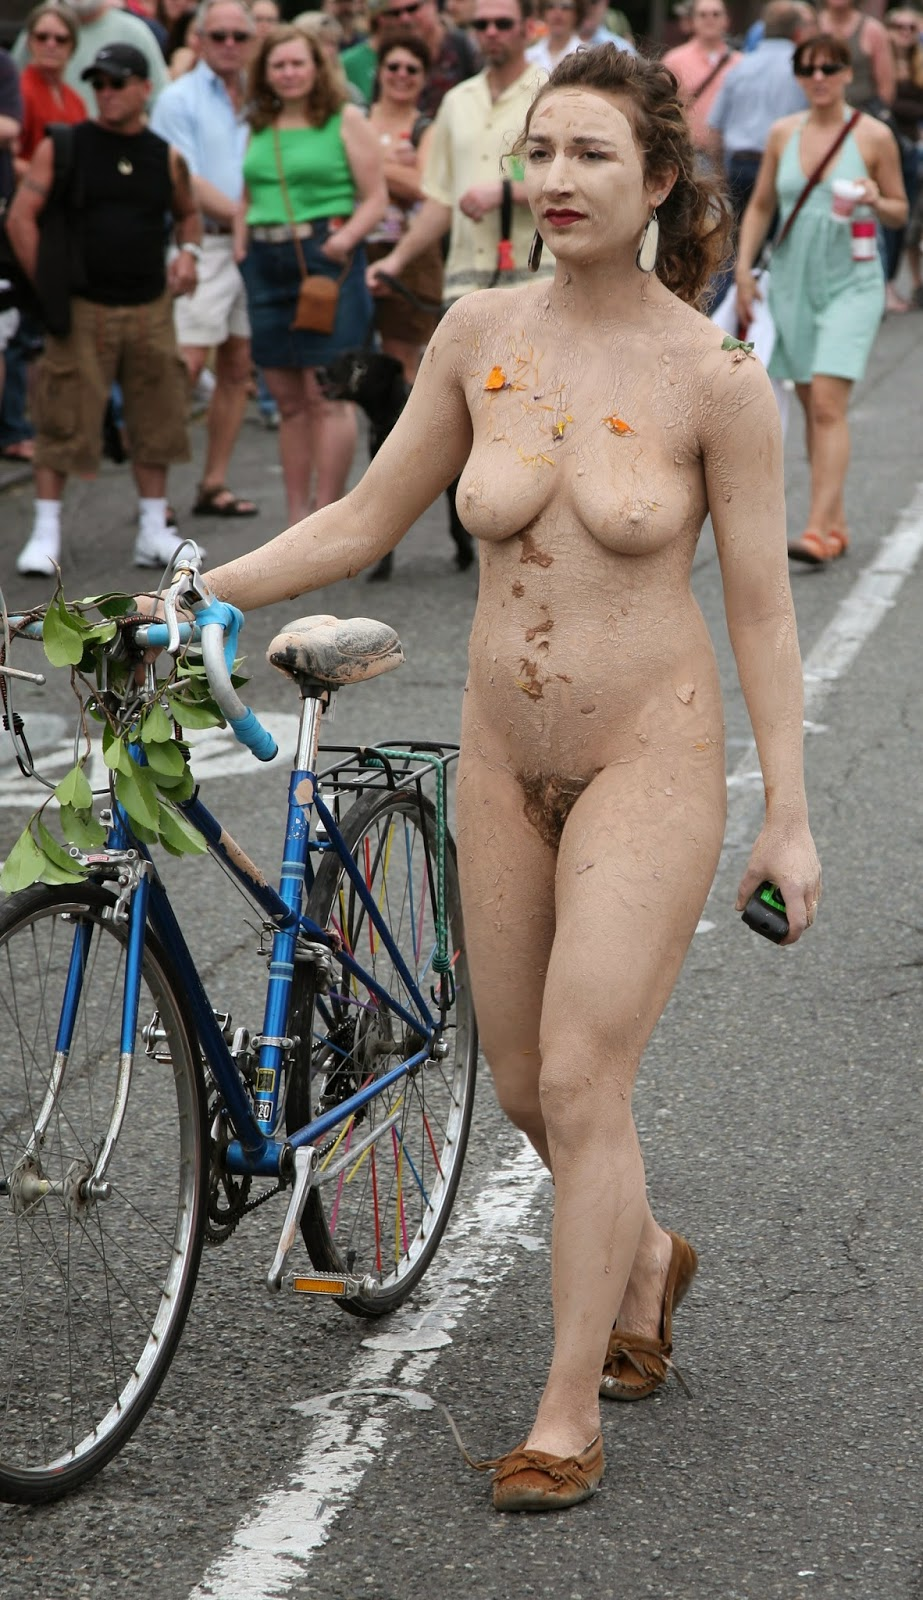 Public nude ina parade something is